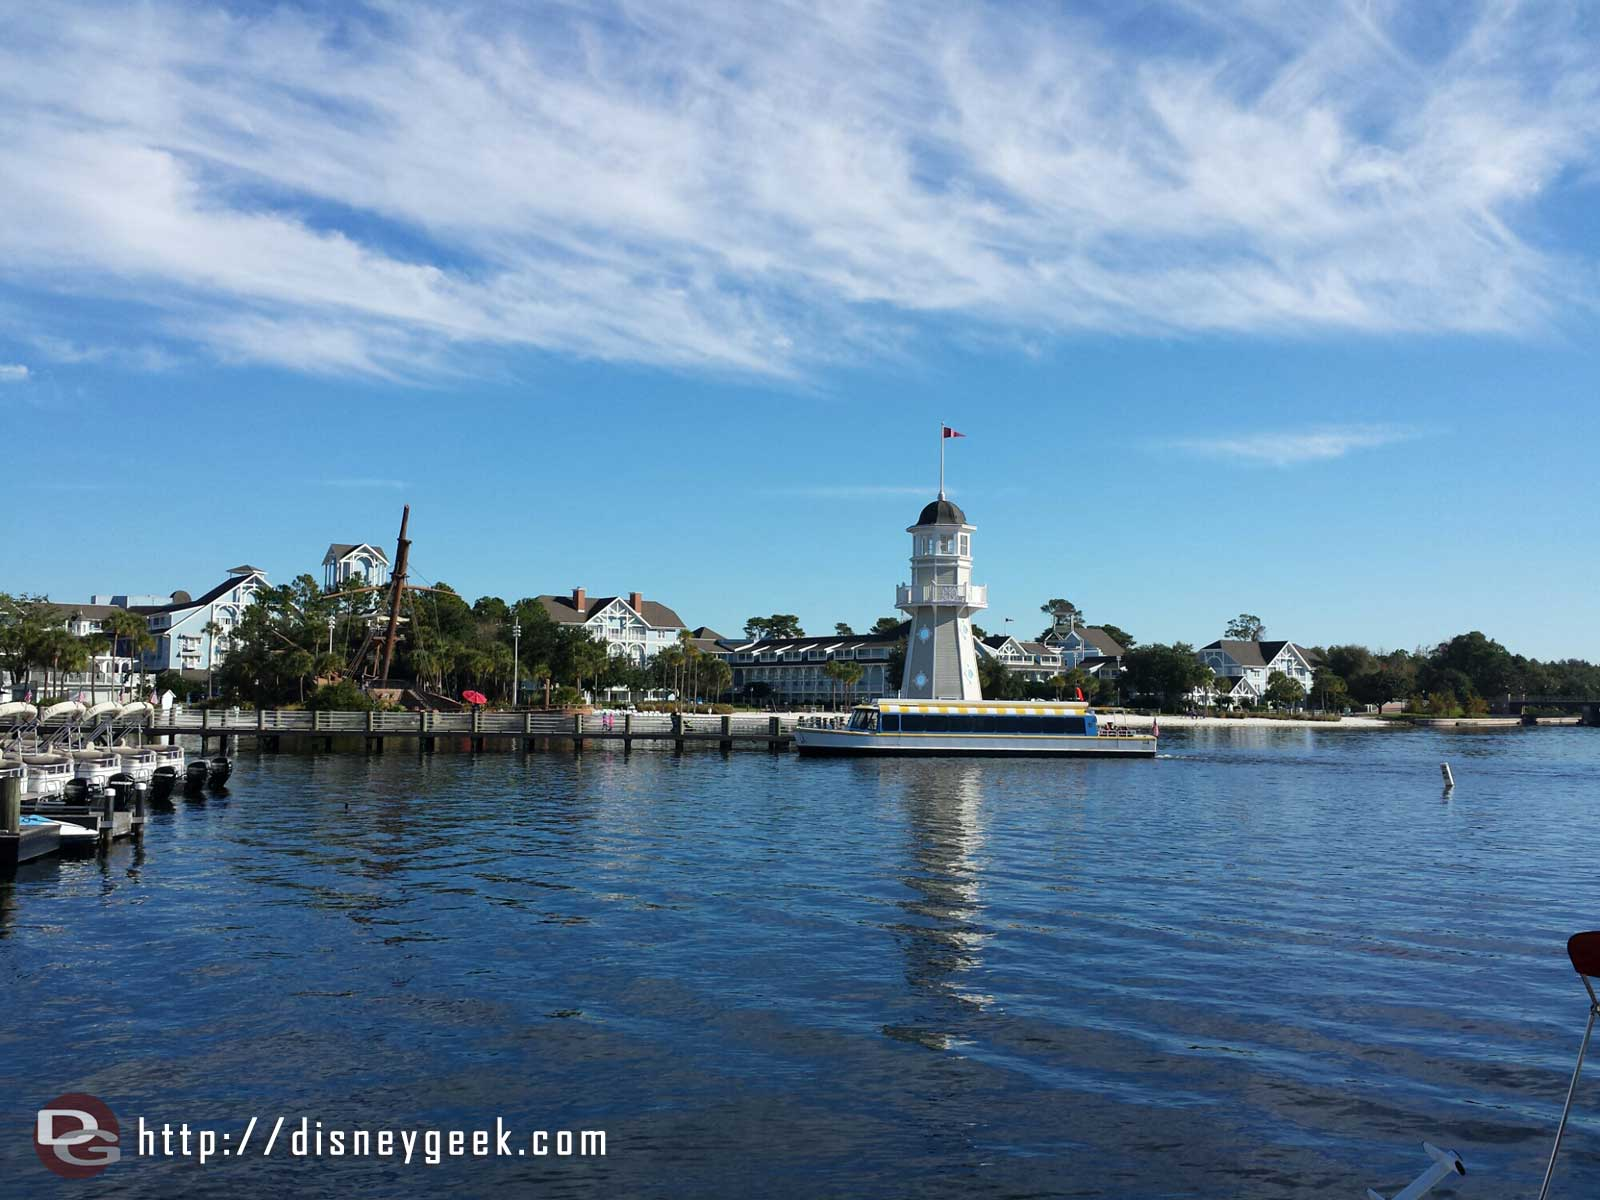 The Disney's Yacht Club Resort dock/lighthouse